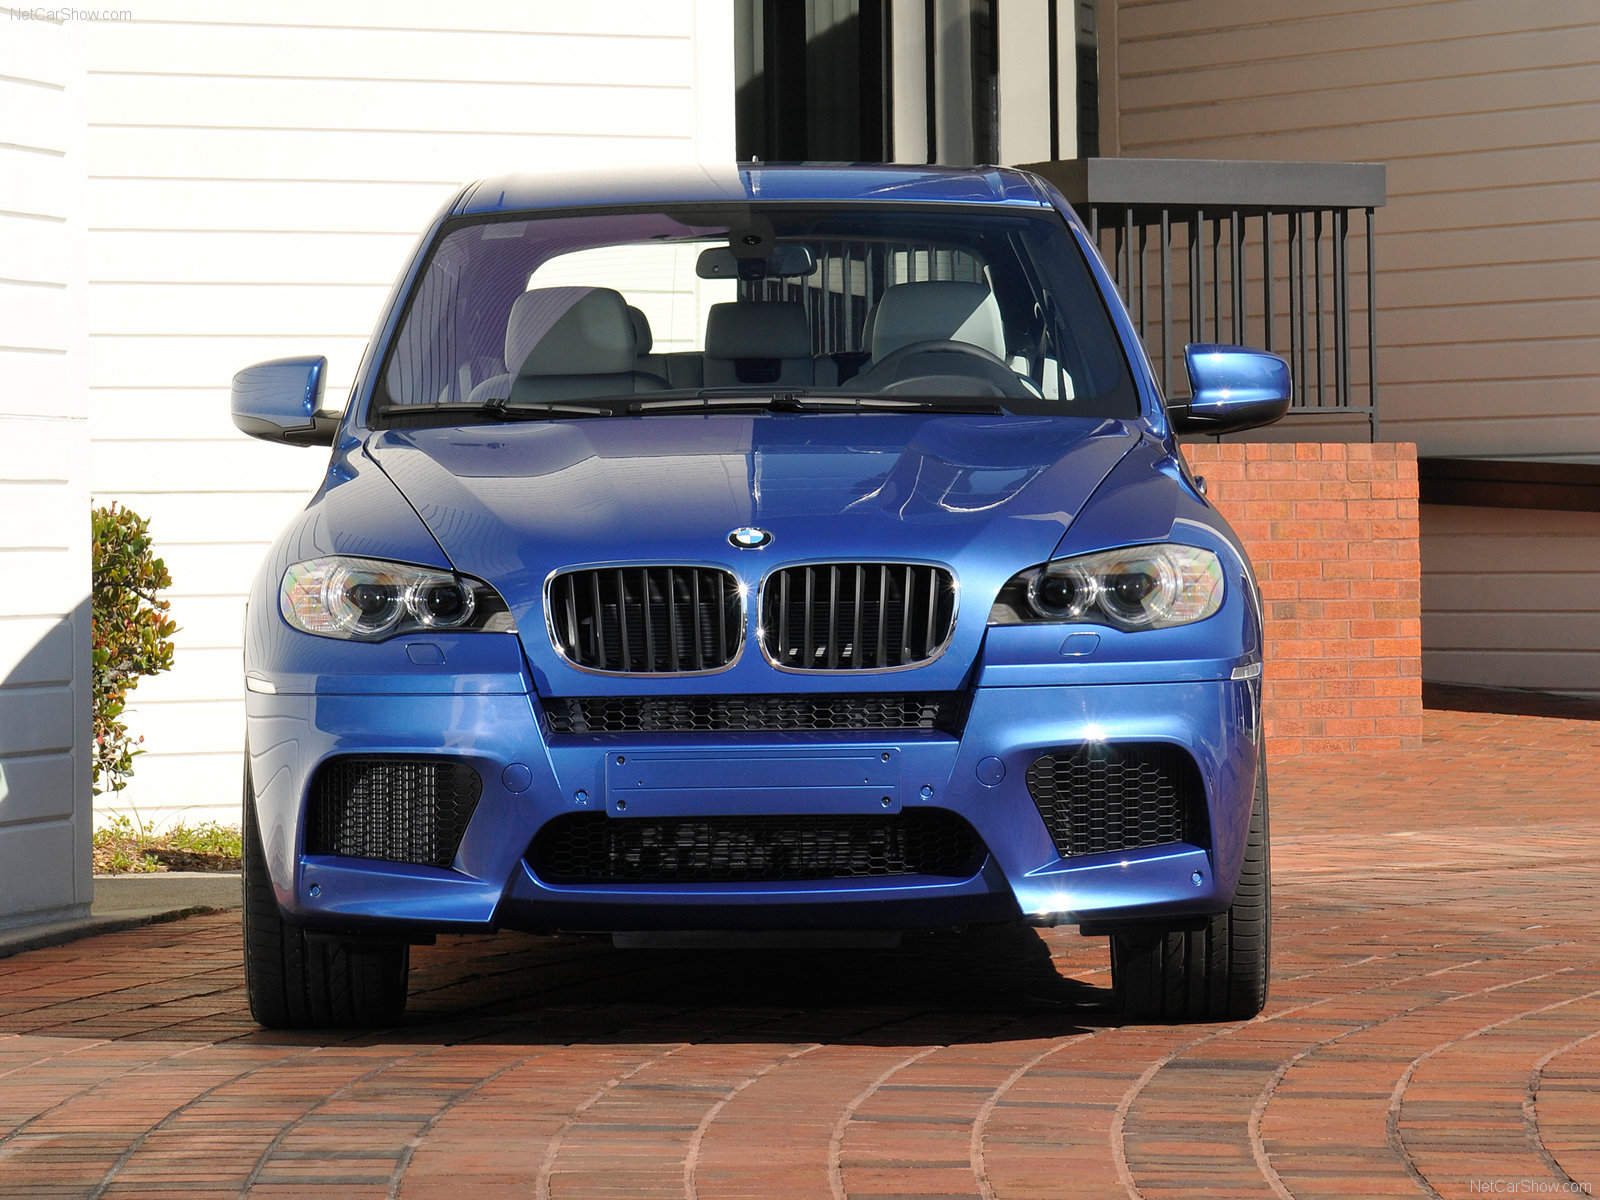 photo comparison 2015 bmw x5 m vs the original. Black Bedroom Furniture Sets. Home Design Ideas